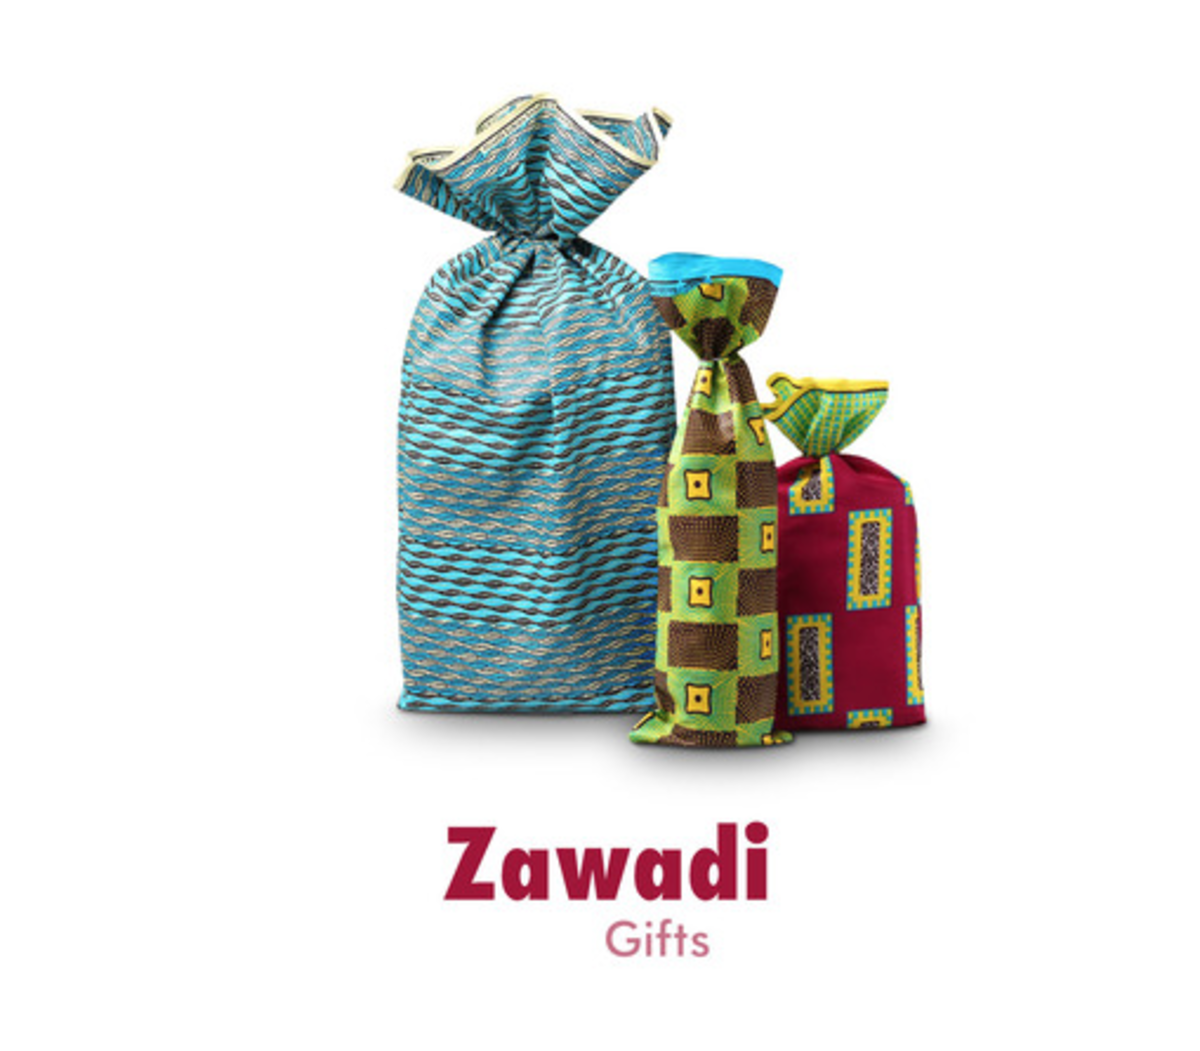 On the seventh day of Kwanzaa, Zawadi (gifts) are exchanged with immediate family and with guests.